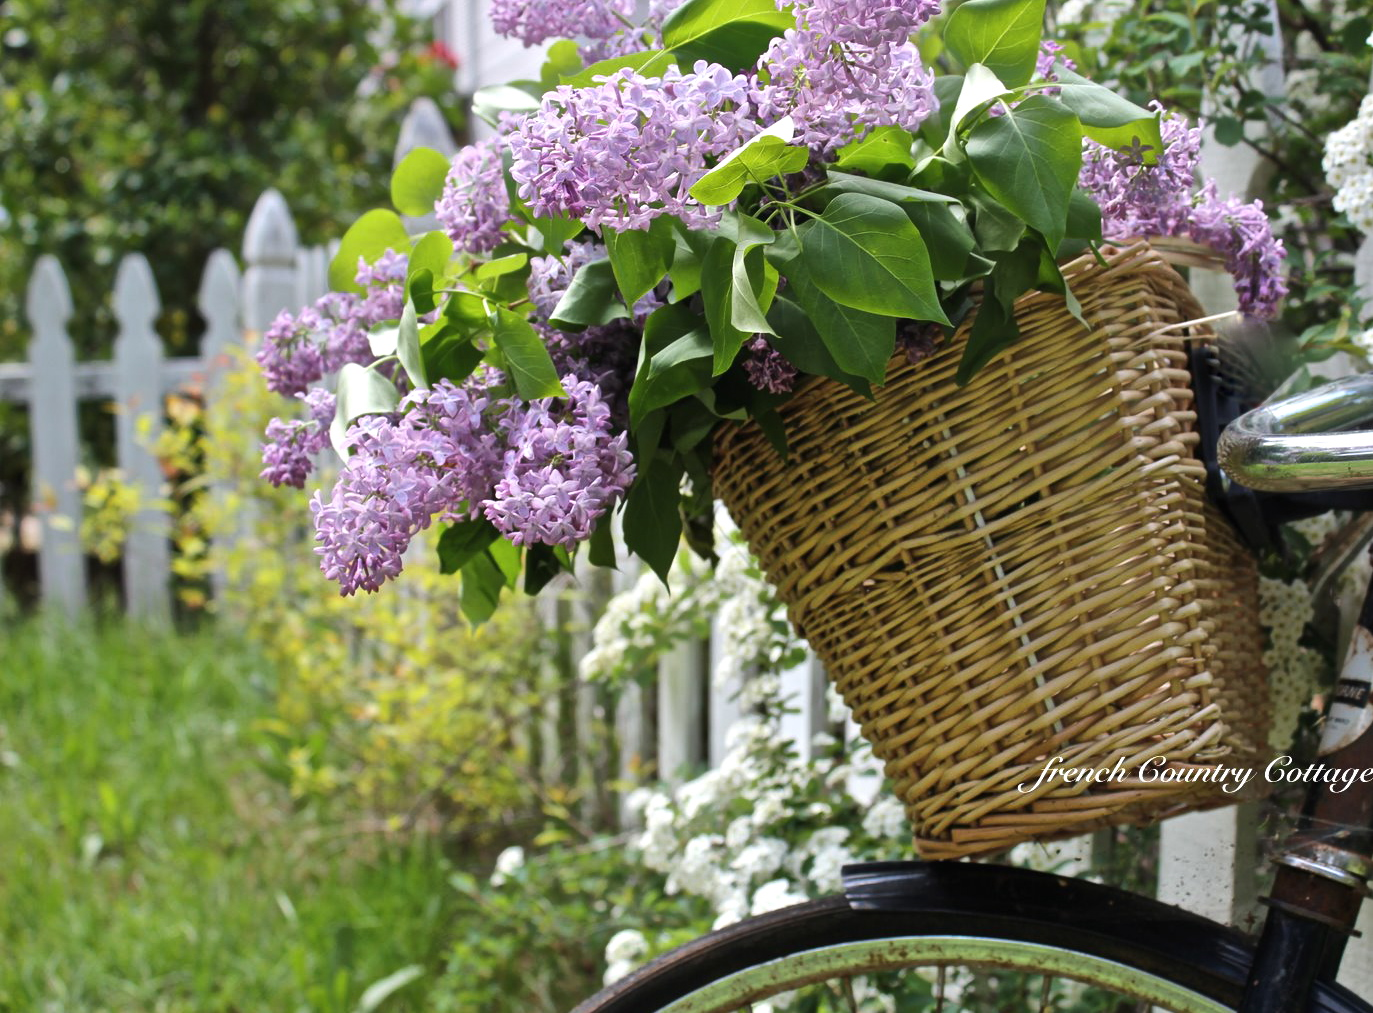 Falling Weed Wallpaper A Bouquet Of Lilacs French Country Cottage